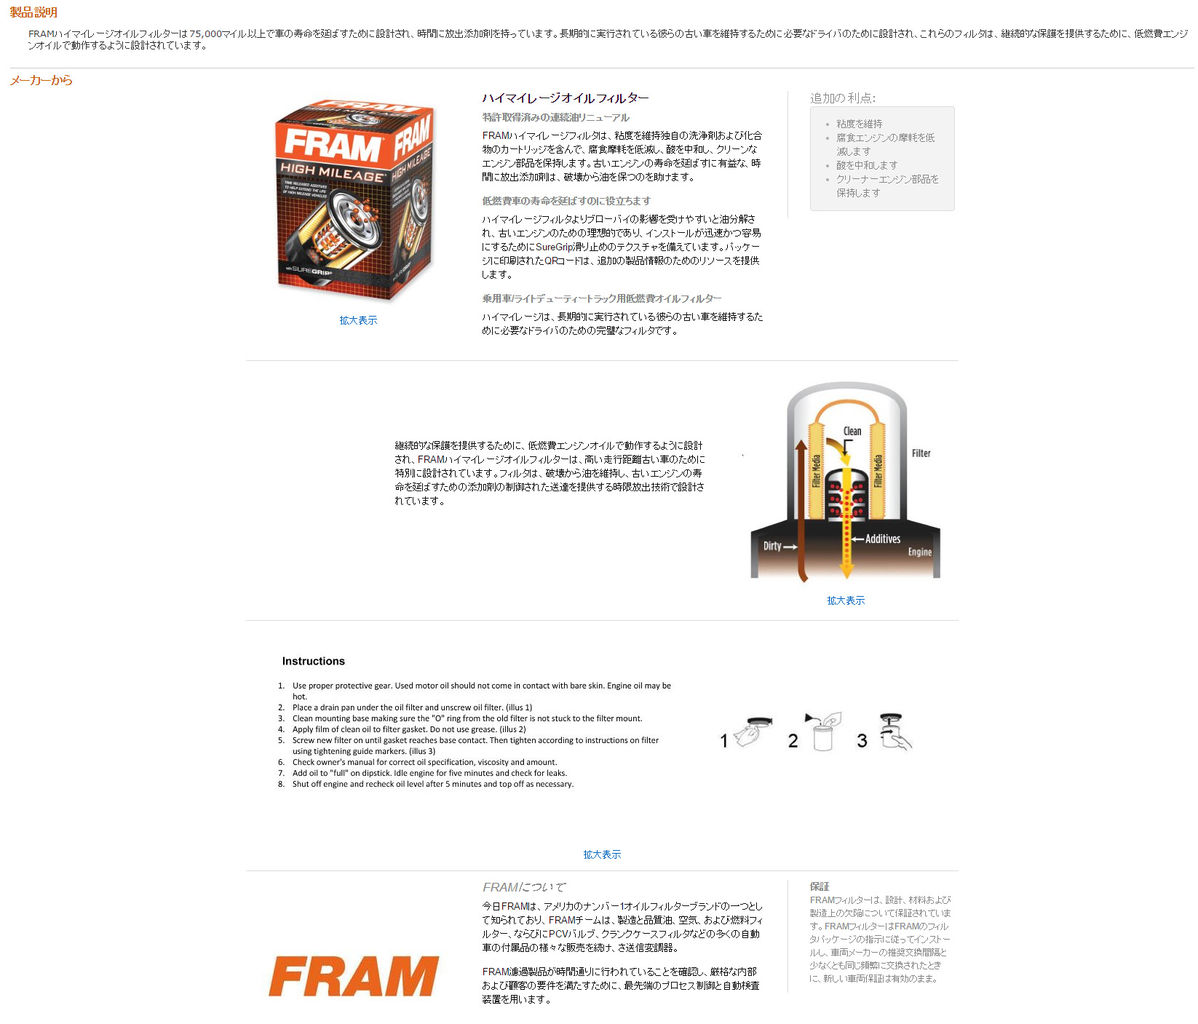 FRAM USA Amazon